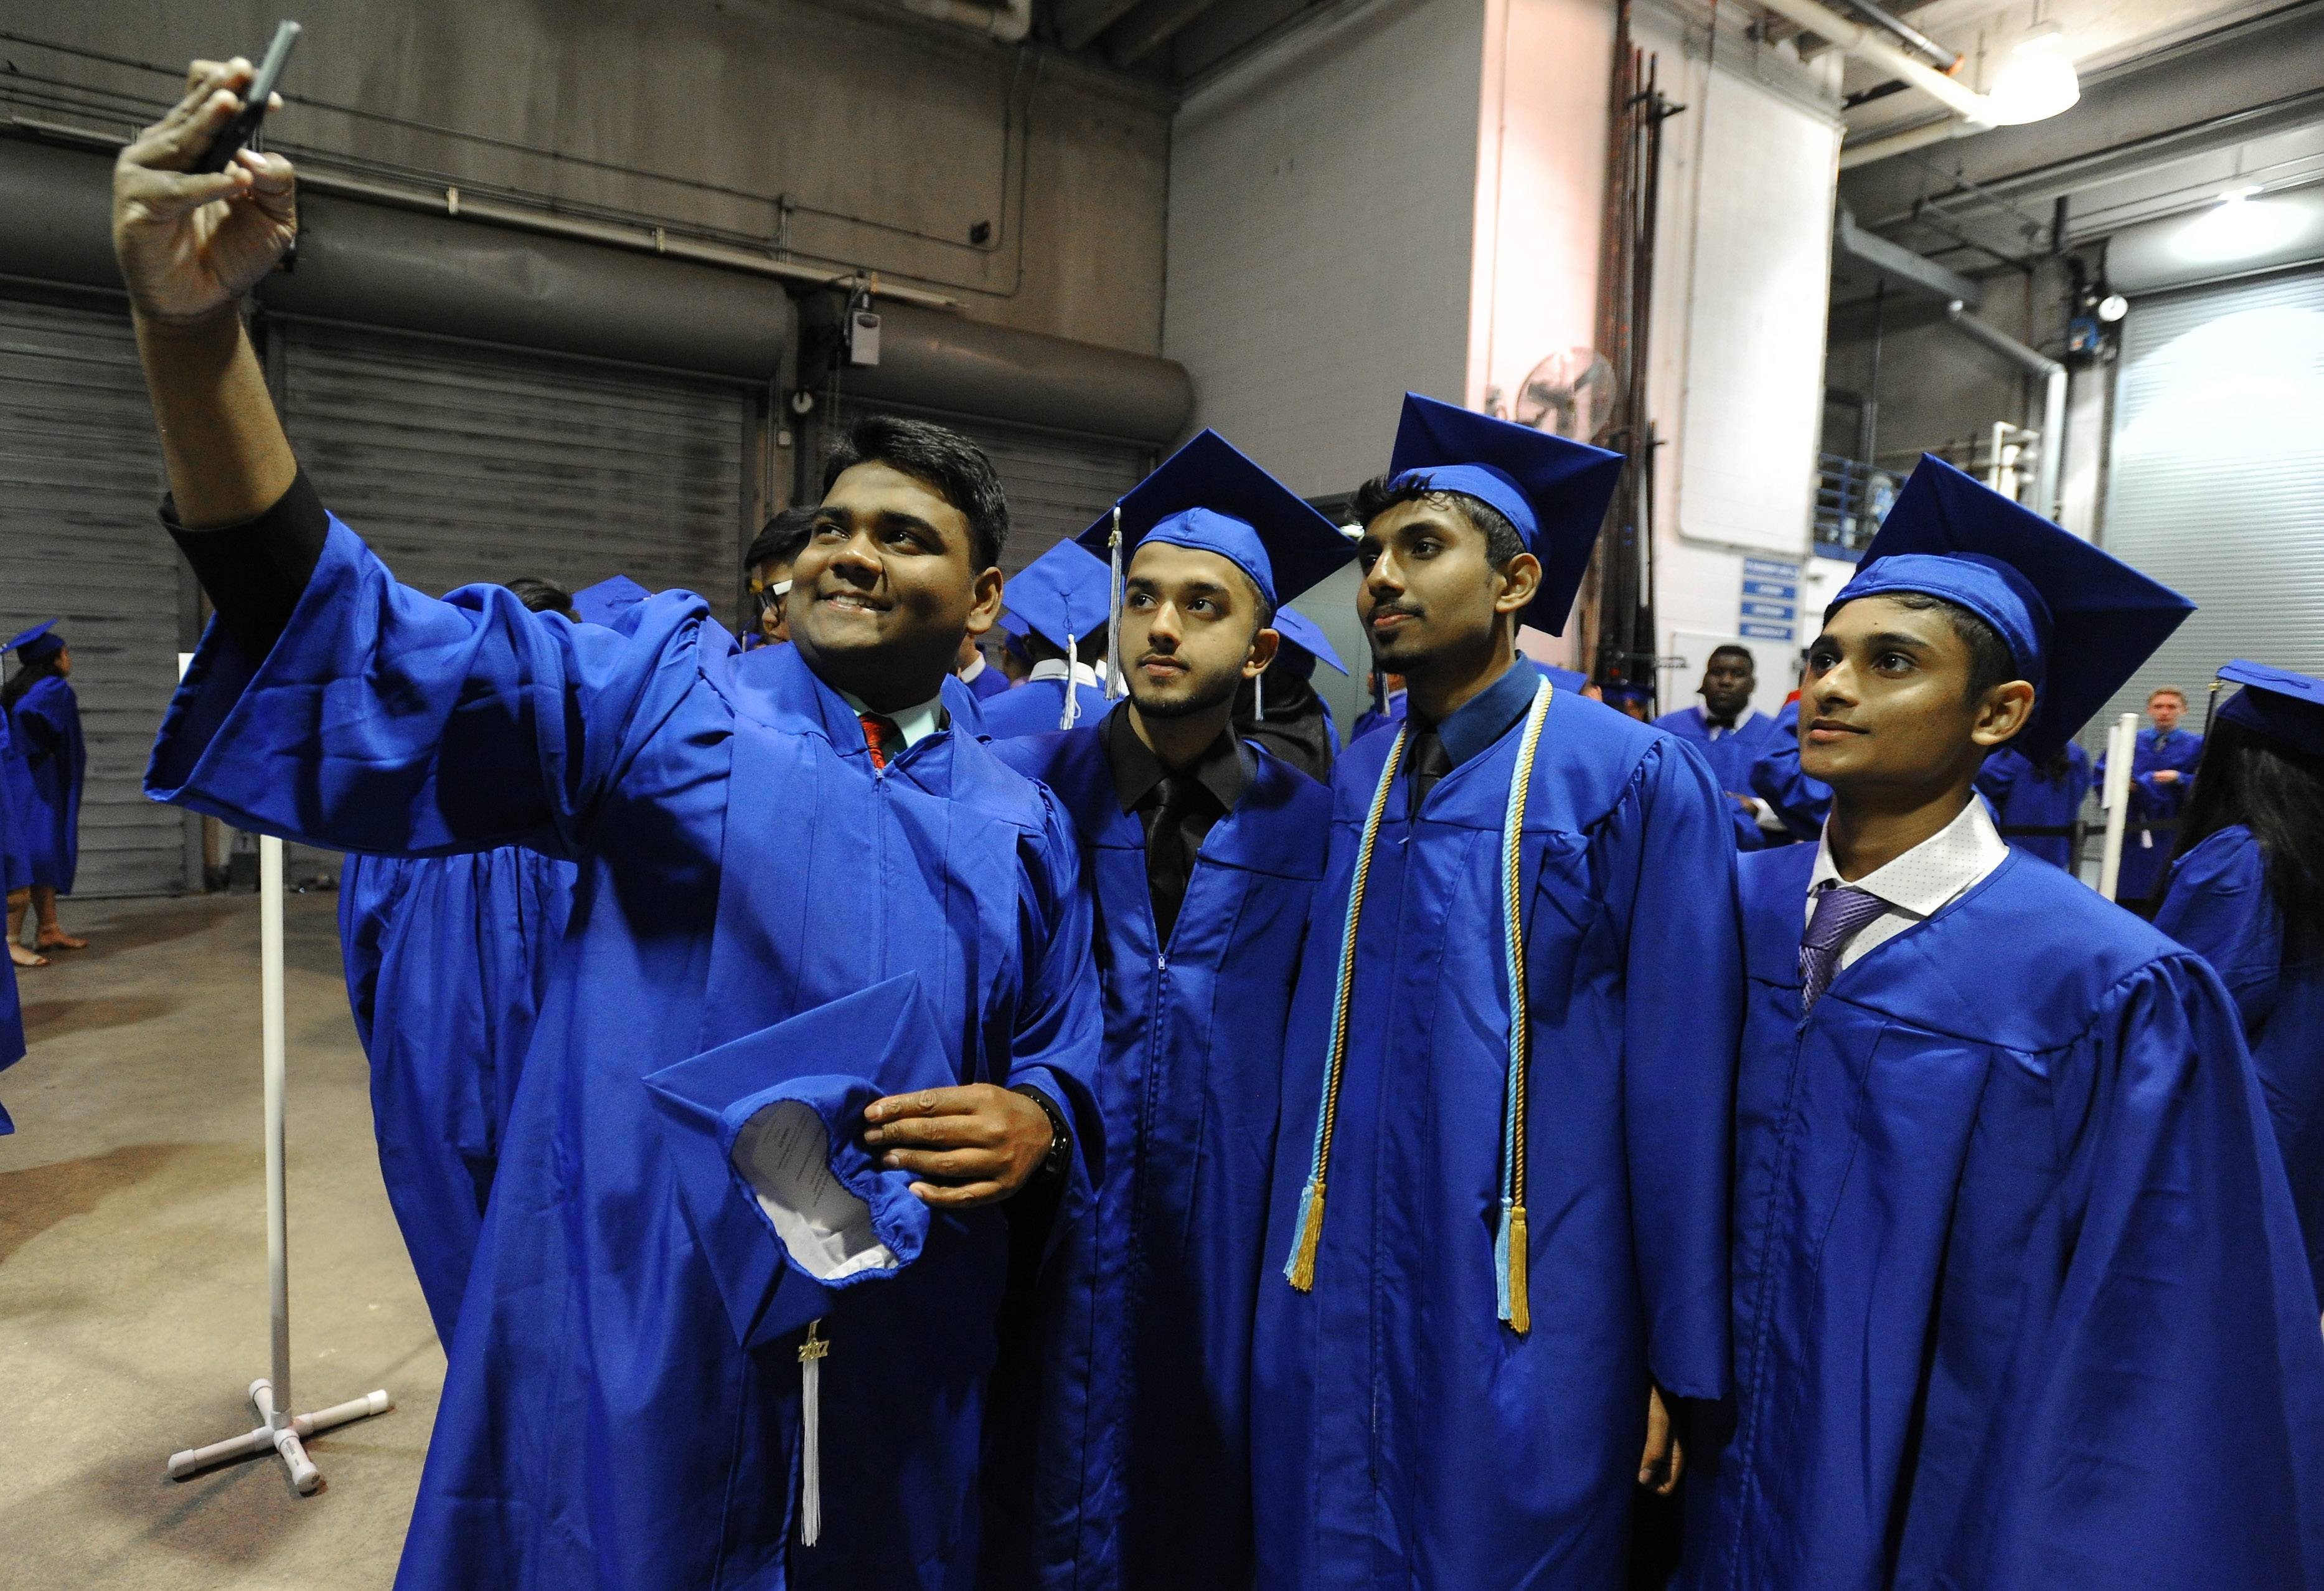 Maine East seniors Joel Shaji, 18, of Des Plaines takes a picture with his friends Sohail Khan, 19, of Skokie, Amal Josy, 18, of Des Plaines and Joseph Jacob, 18, of Des Plaines at Maine East's 150th annual commencement at the Rosemont Theatre on Sunday.